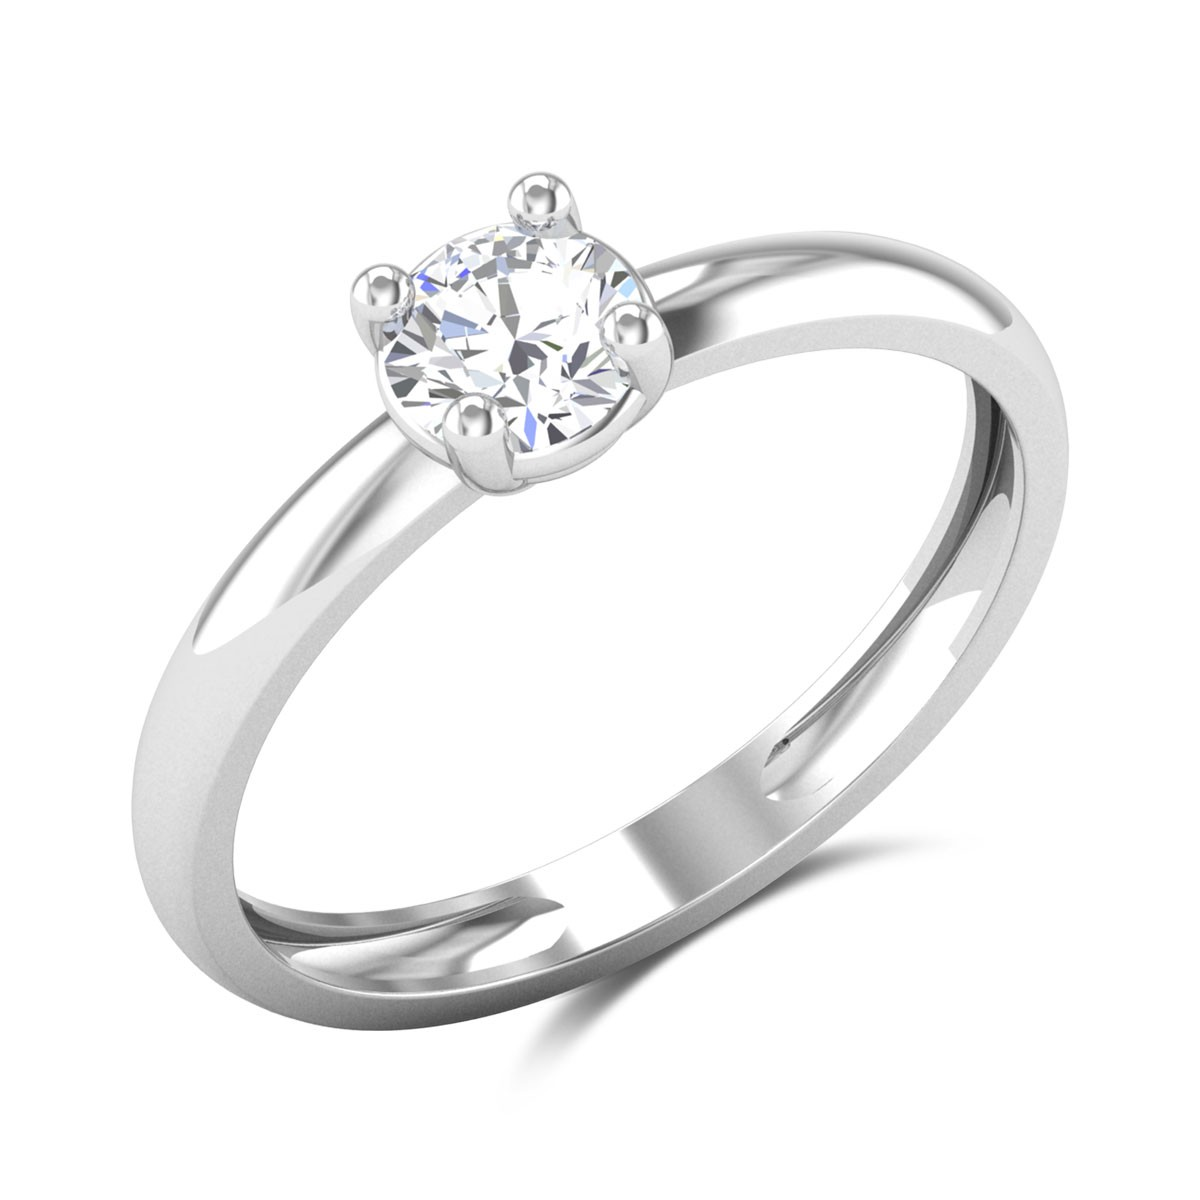 Alaia 4 Prong Solitaire Ring